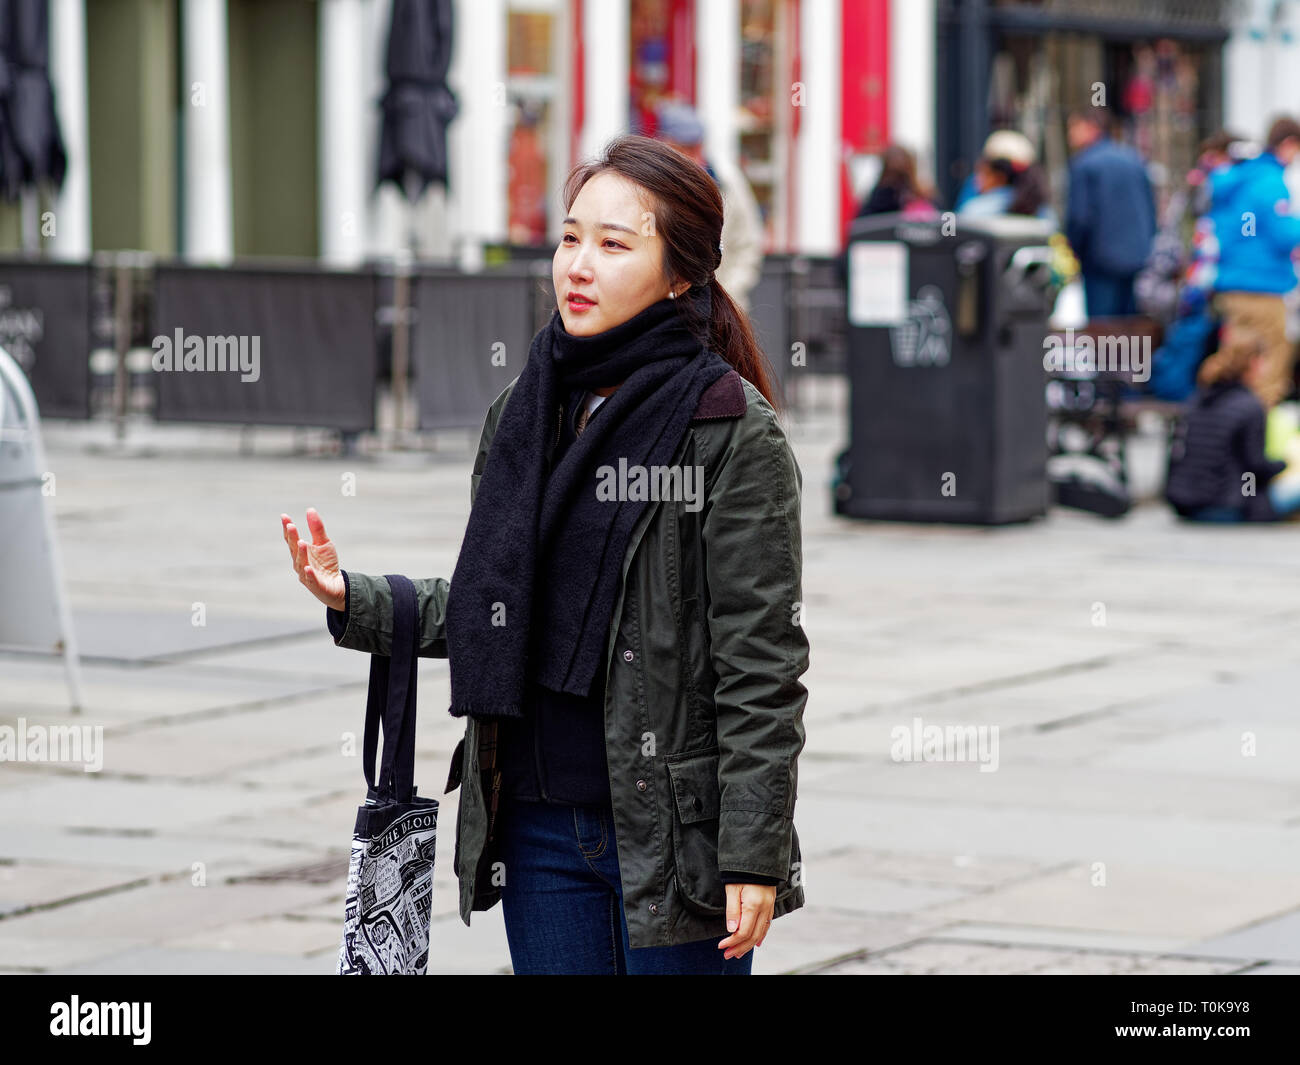 Tourist visitor, City Of Bath , England, UK - Stock Image